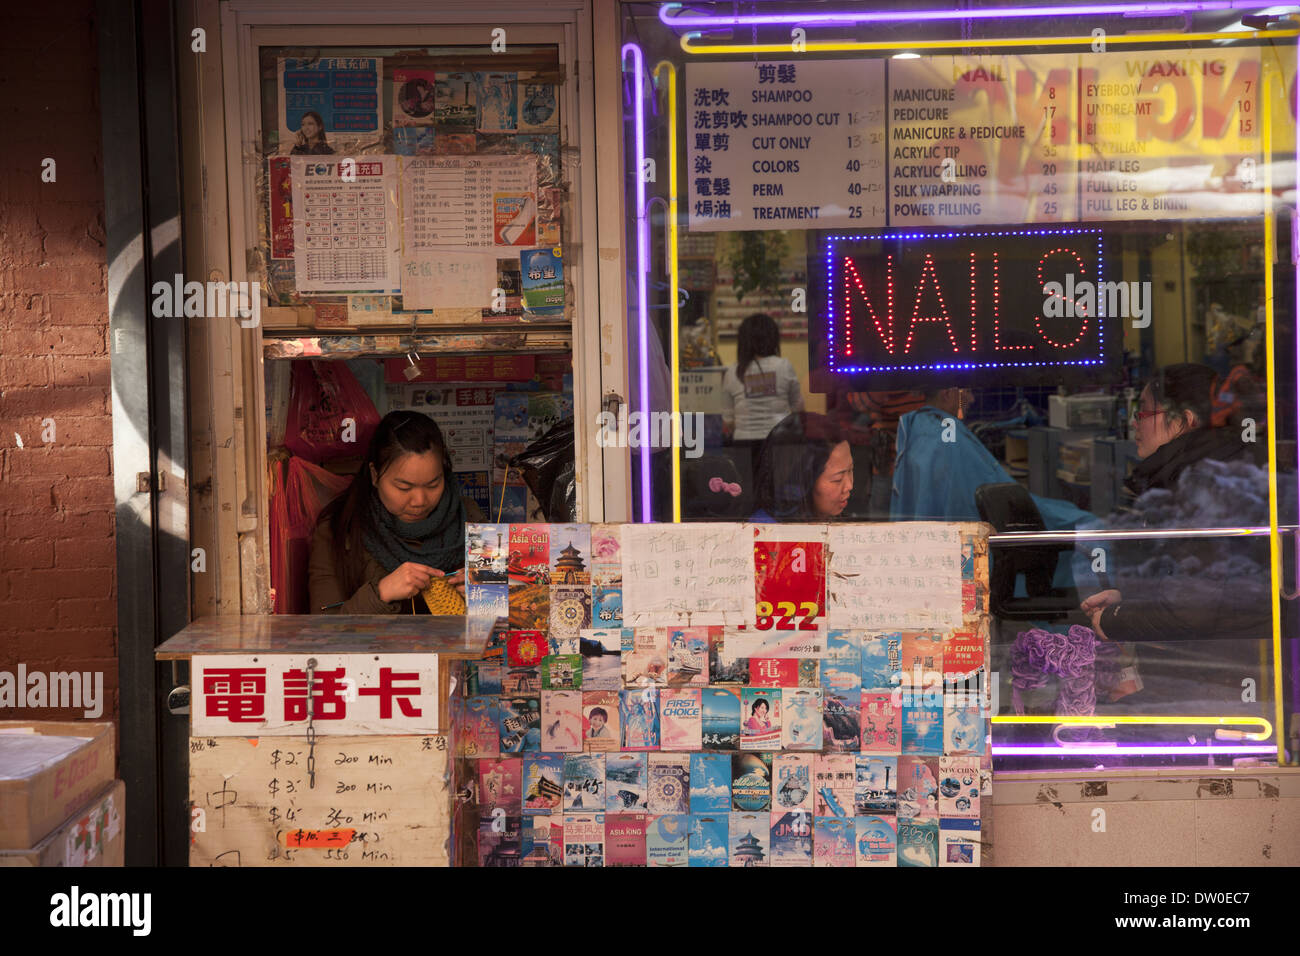 Nail salon chinatown new york city stock photo royalty for 24 nail salon nyc